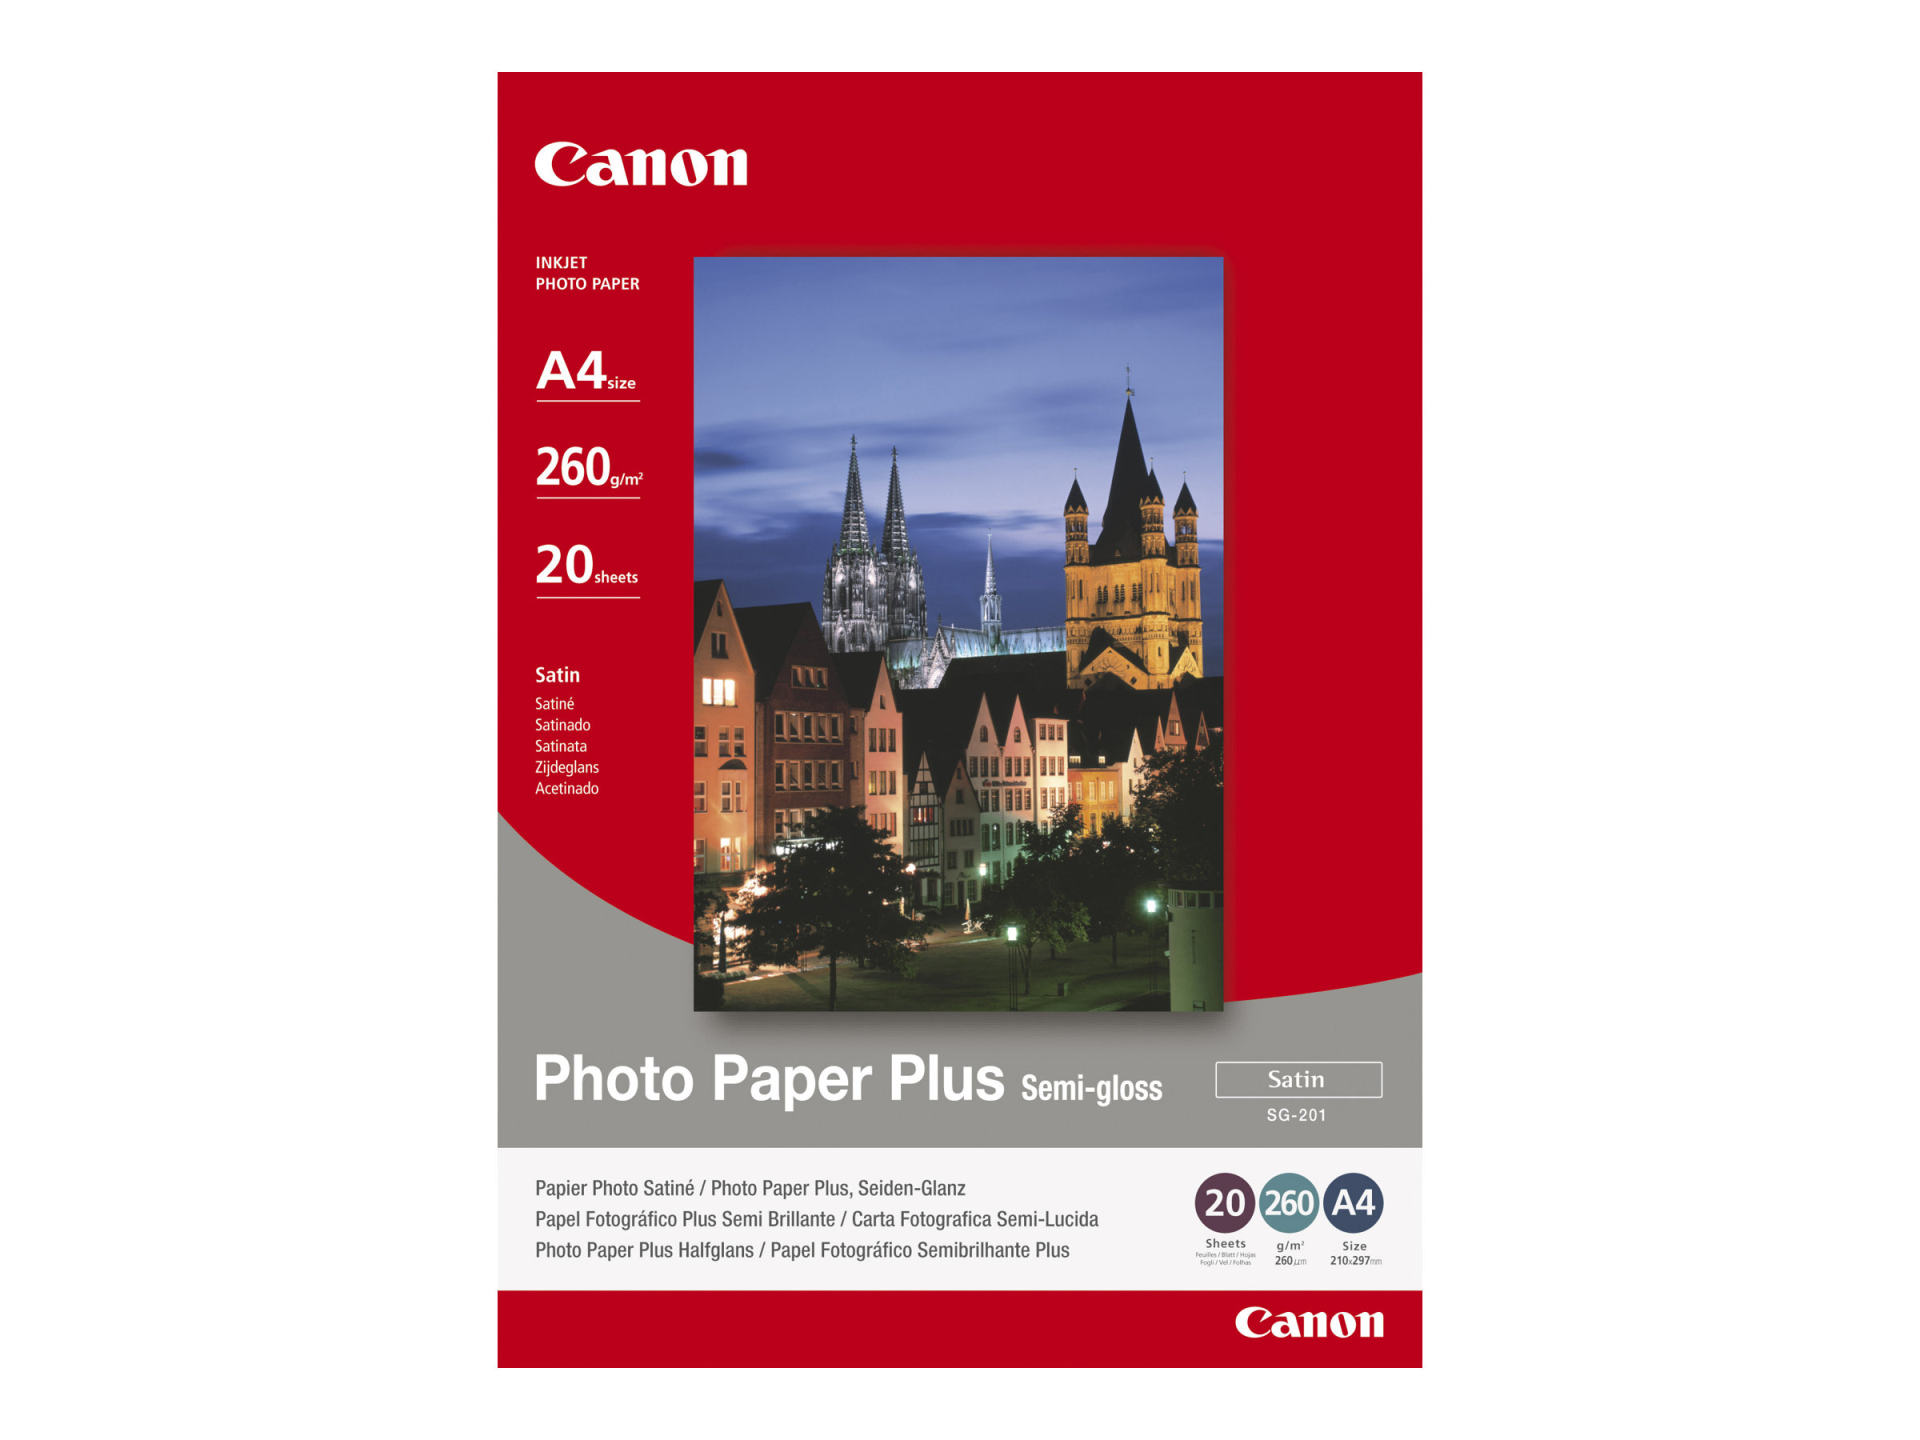 Paper Canon SG201 Photo Paper Plus Semi-glossy | 260g | A4 | 20sheets foto papīrs